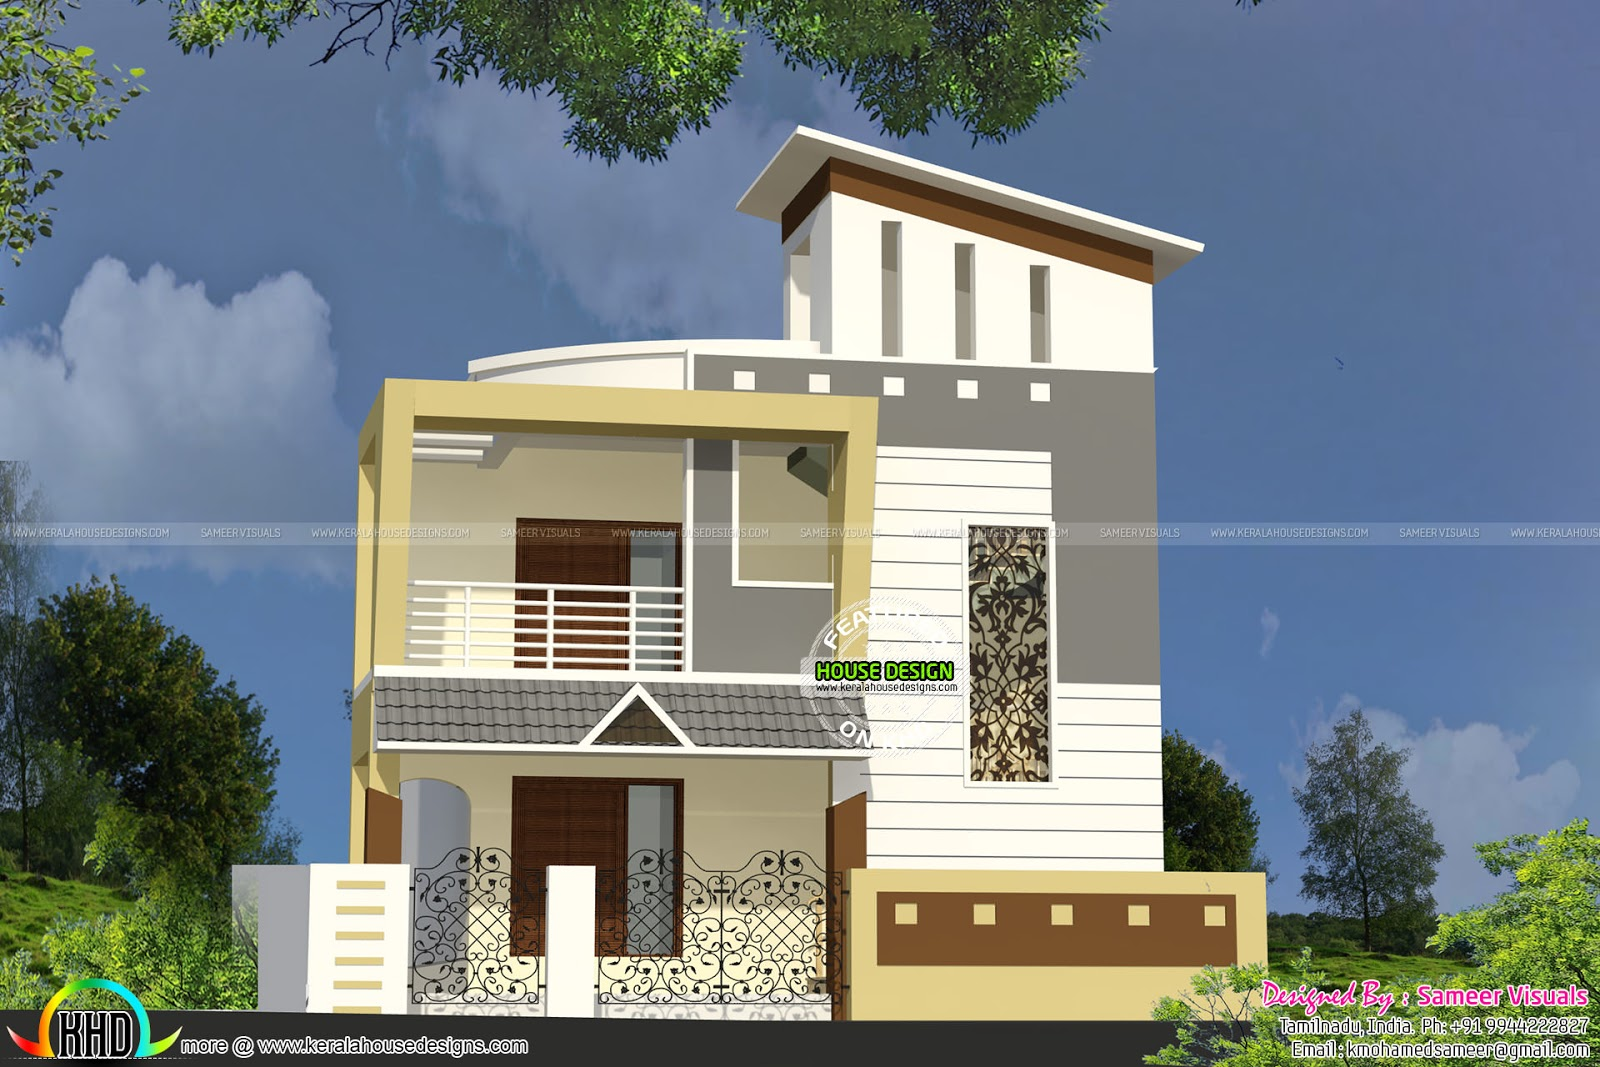 Double floor small home kerala home design and floor plans for South indian small house designs